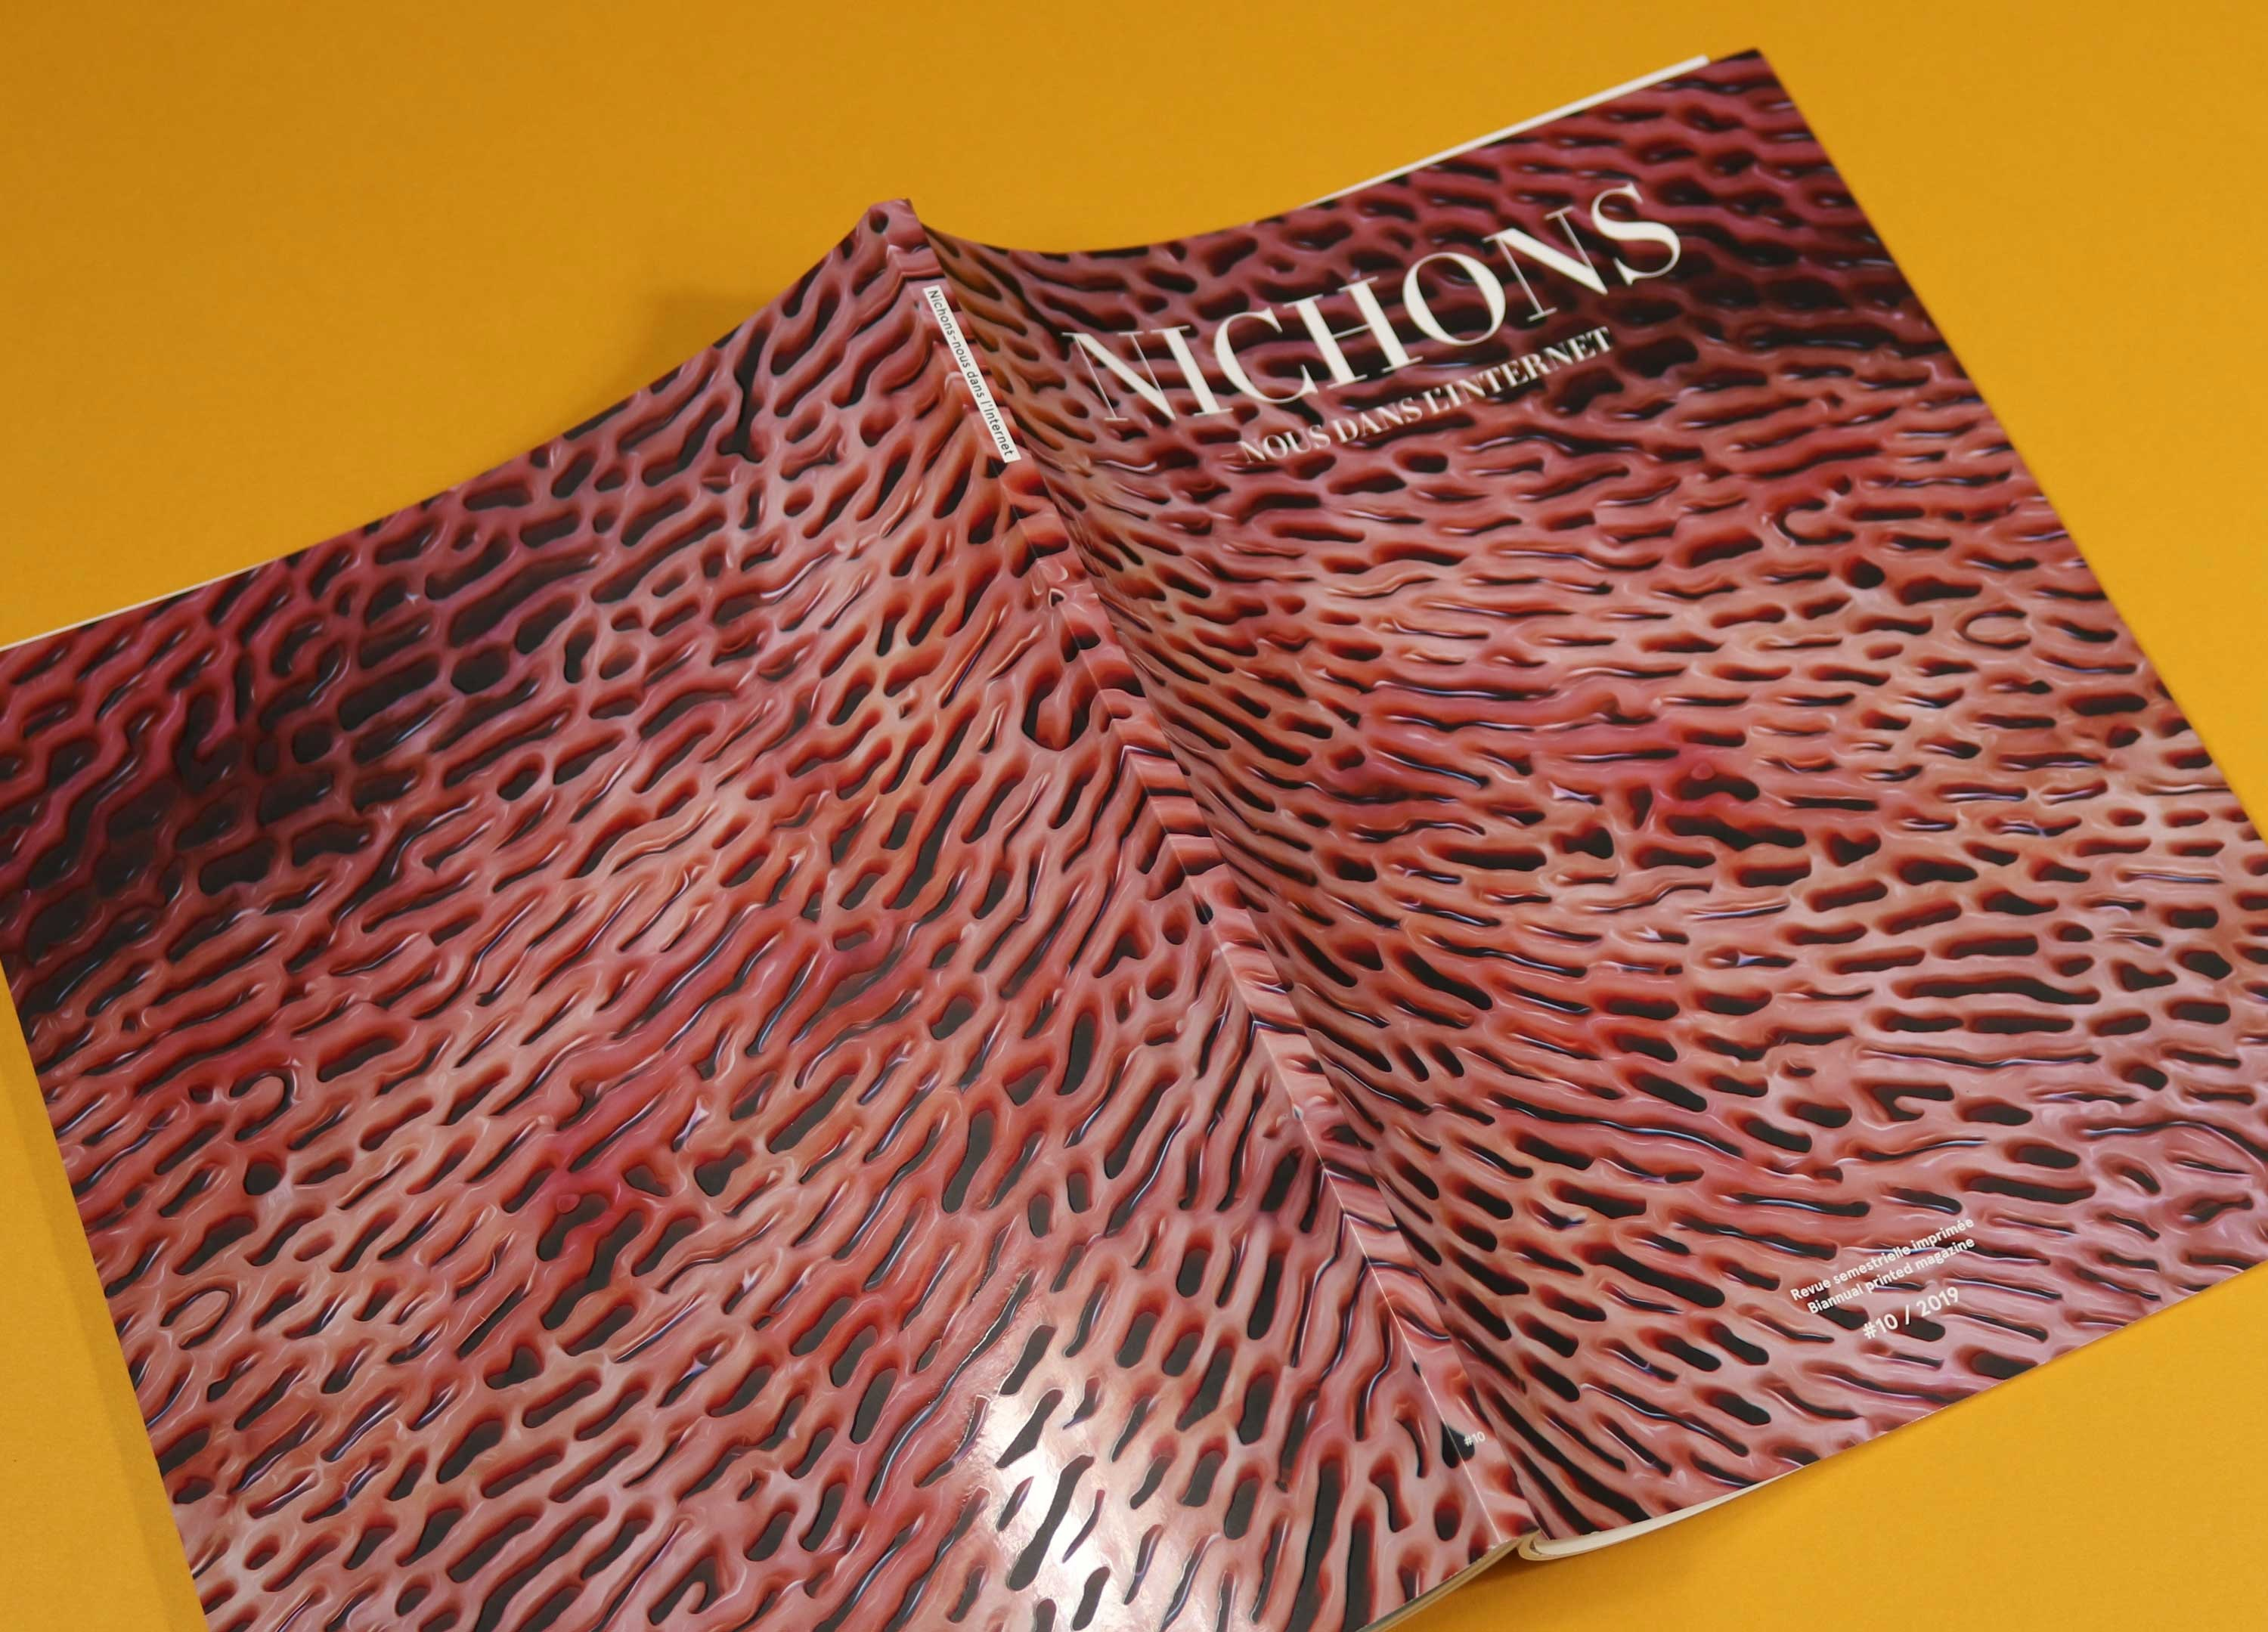 Disgustingly Delicious Images In The New Nichons Nous Stack Magazines